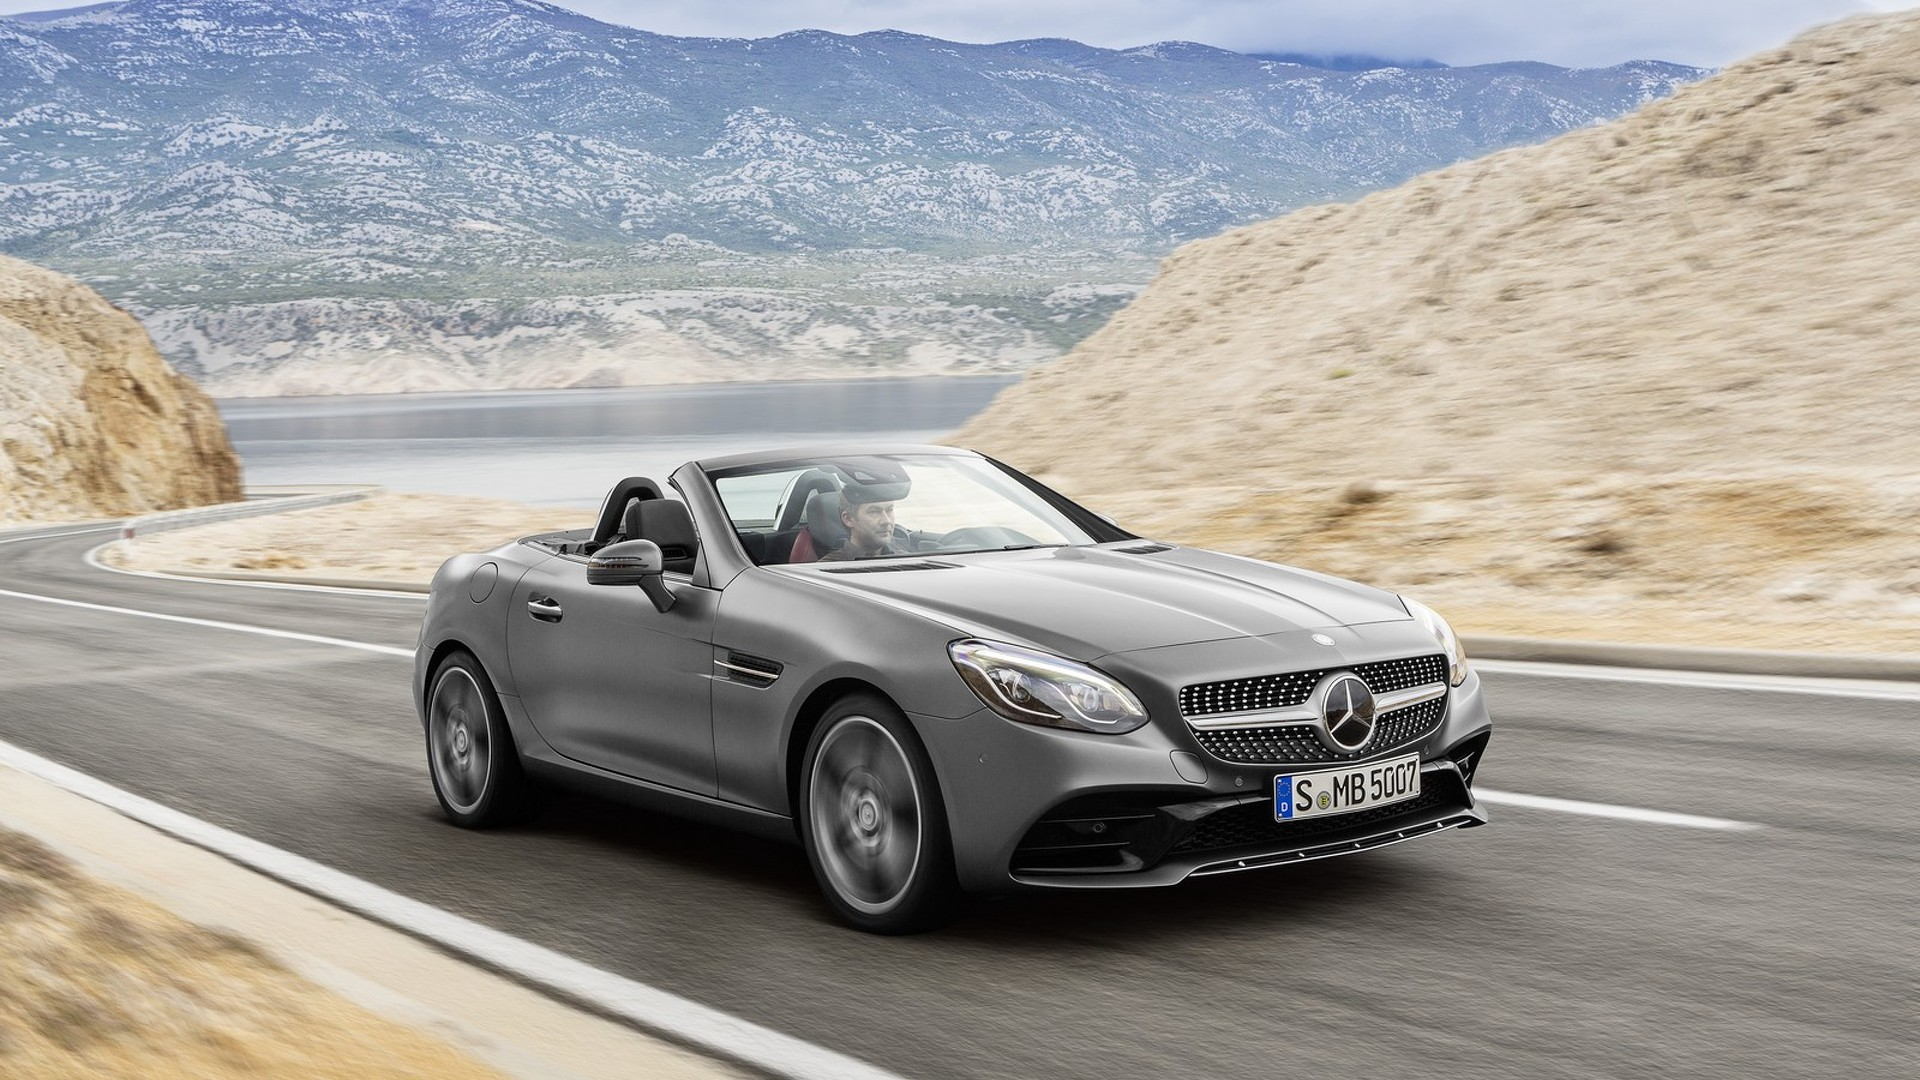 2017 Mercedes SLC unveiled, AMG variant drops the V8